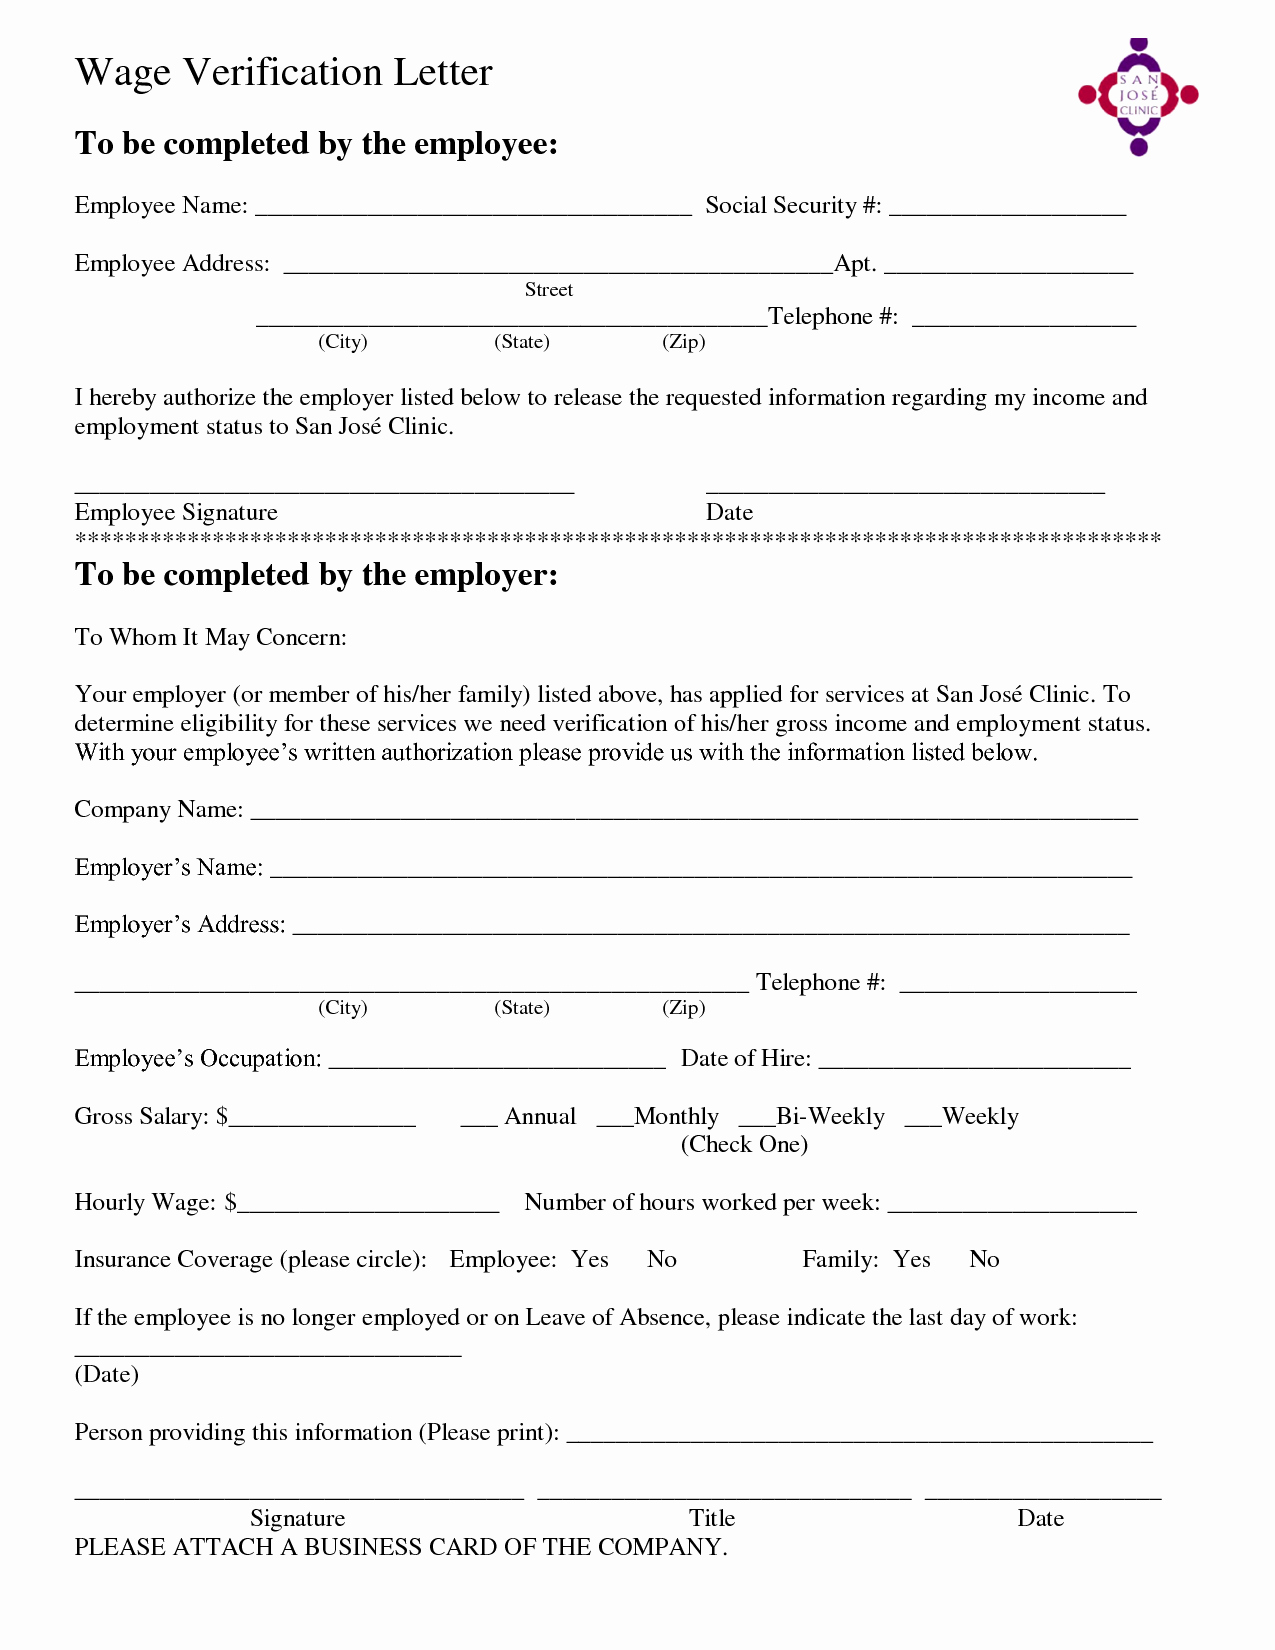 Income Verification form Template Beautiful In E Verification Letter Free Printable Documents